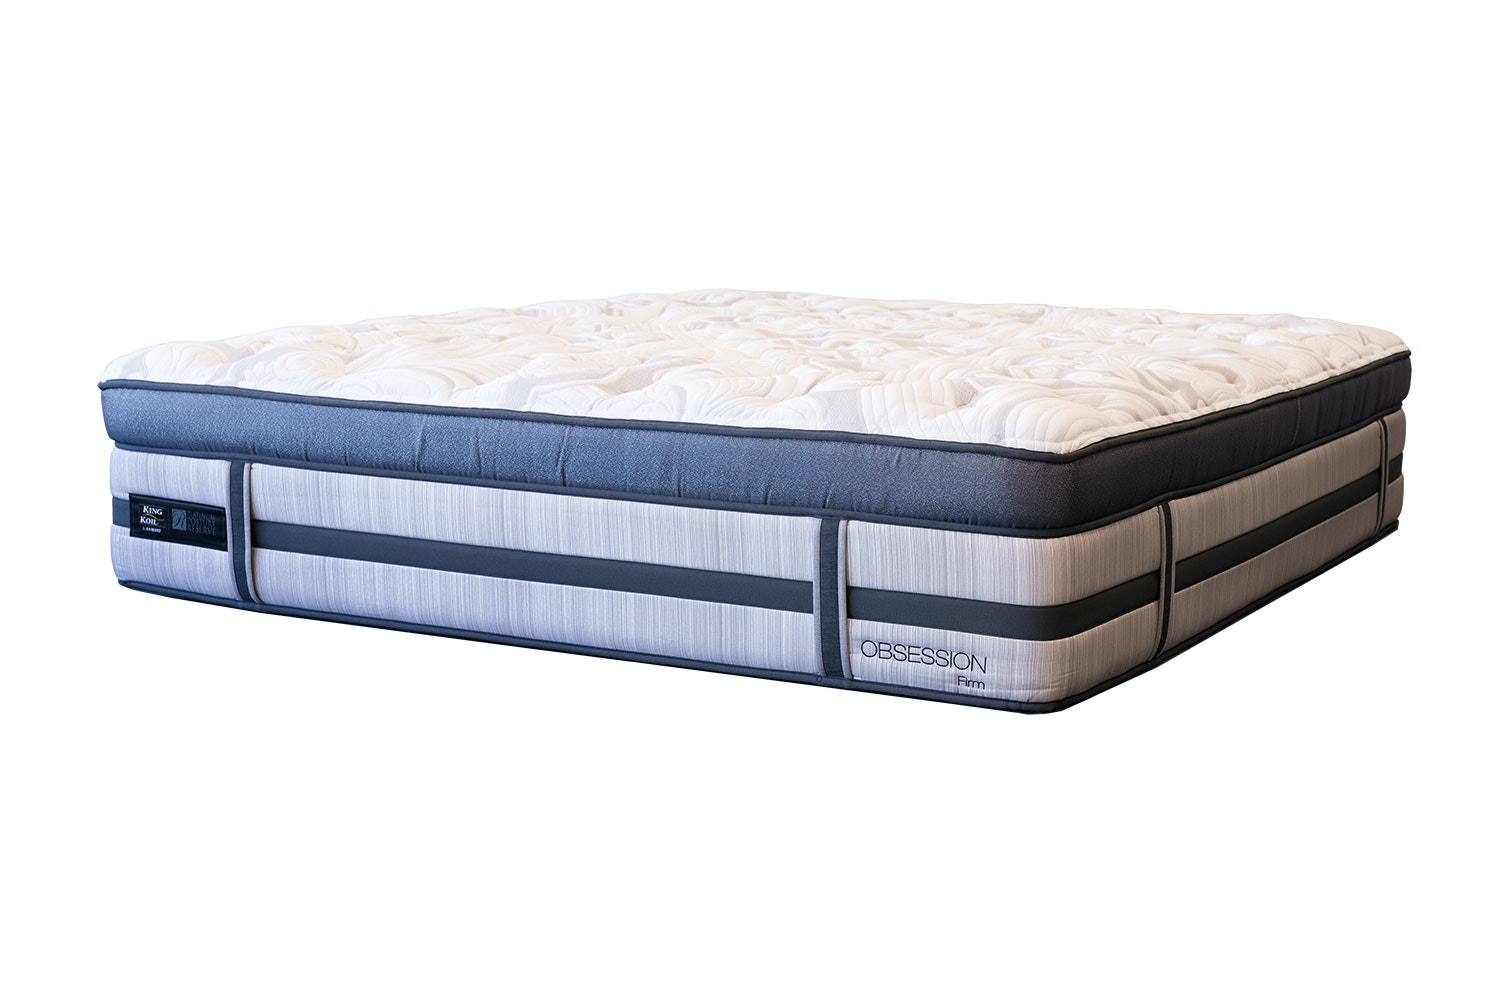 Obsession Firm Single Mattress by King Koil